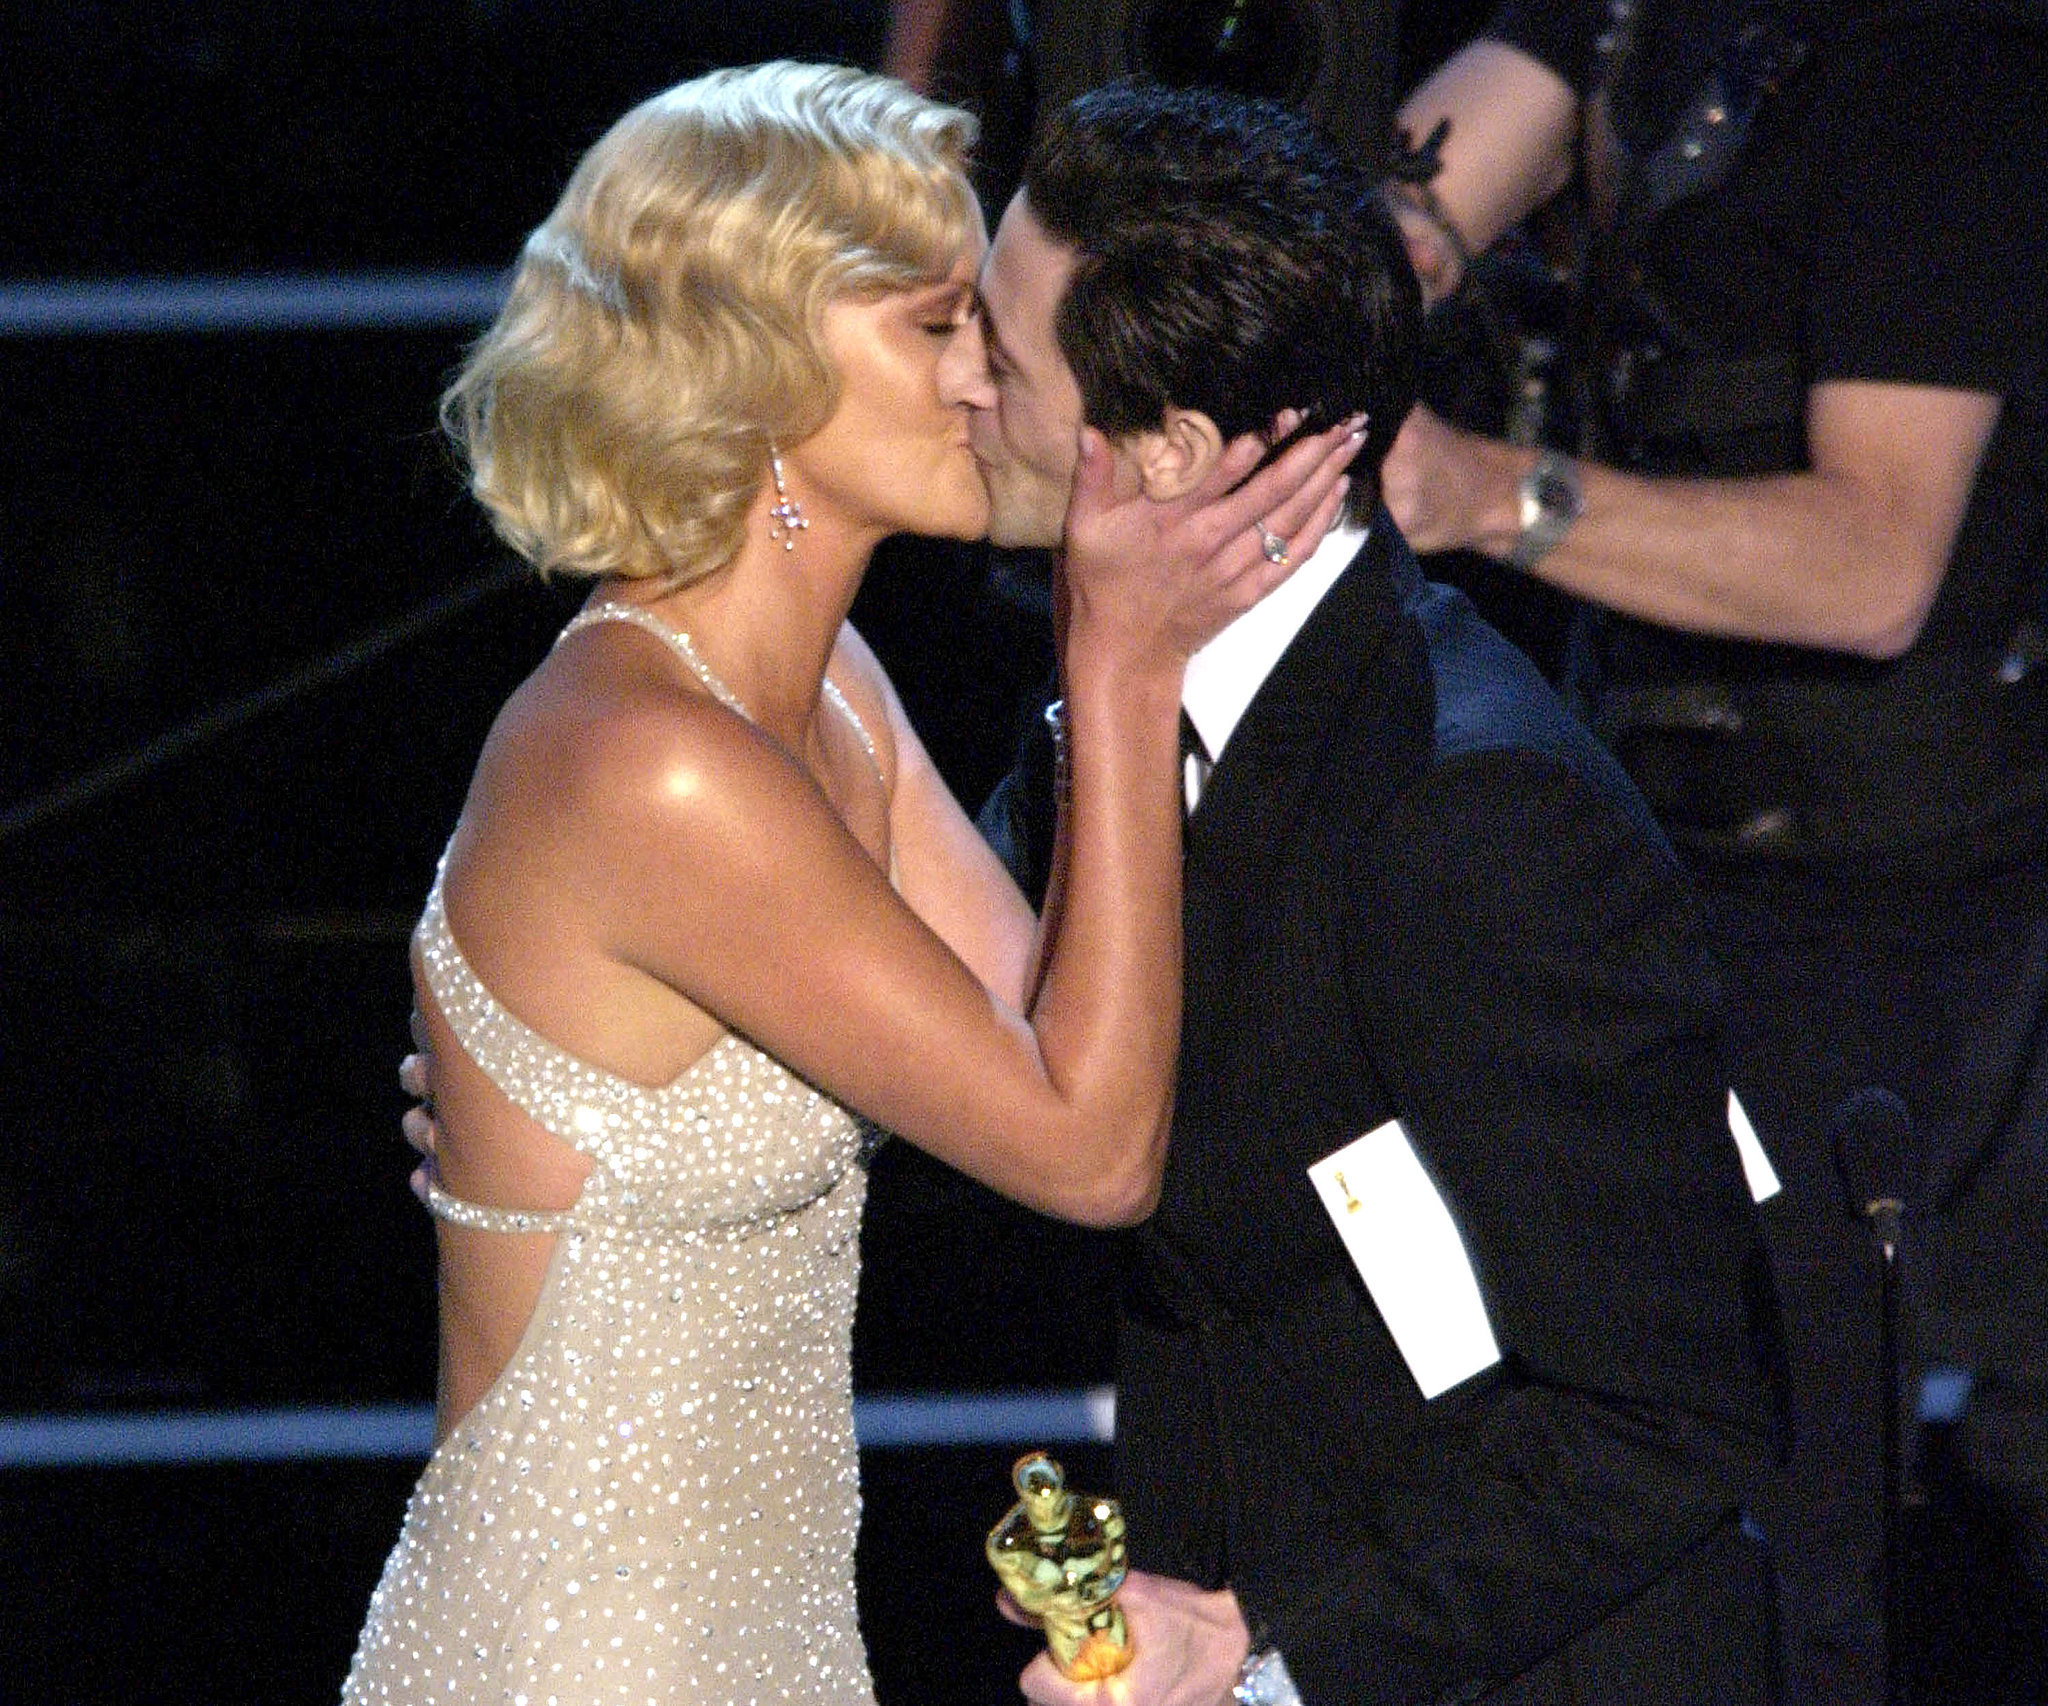 Charlize Theron planted a big kiss on Adrien Brody at the 2004 show.